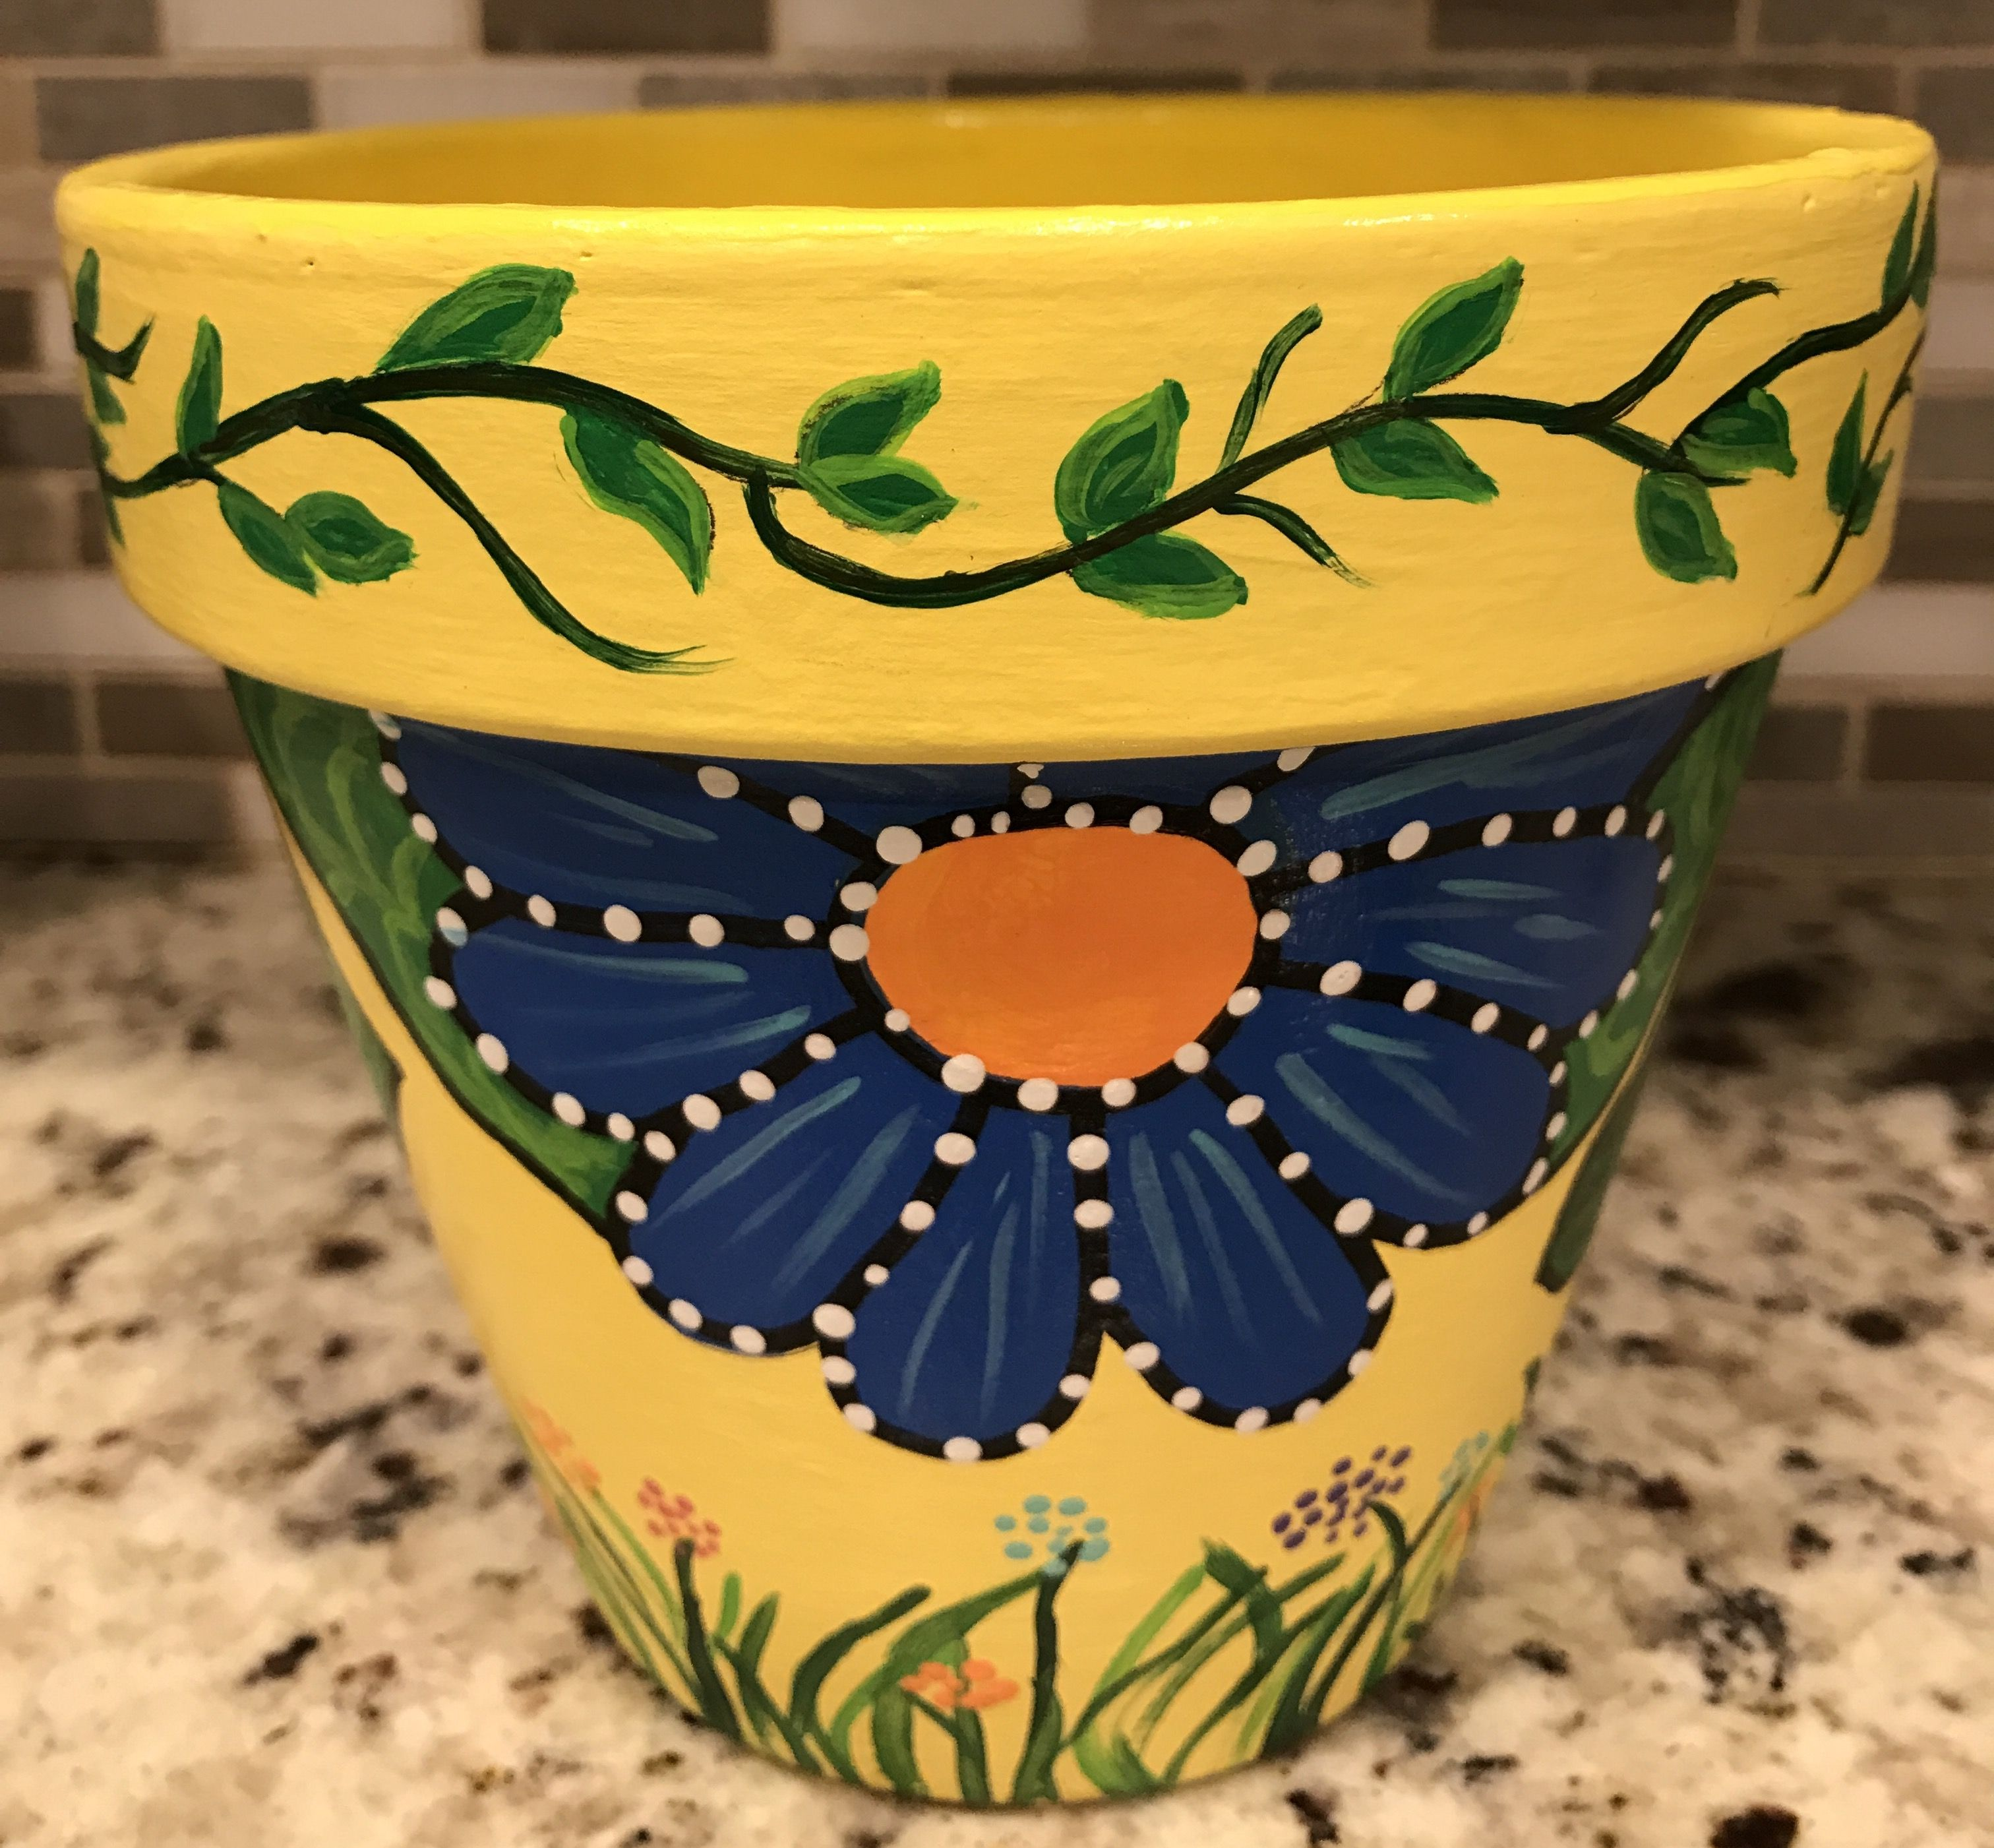 clay pot floral design DIY Terracotta  Decorated flower pots, Clay pot crafts, Painted